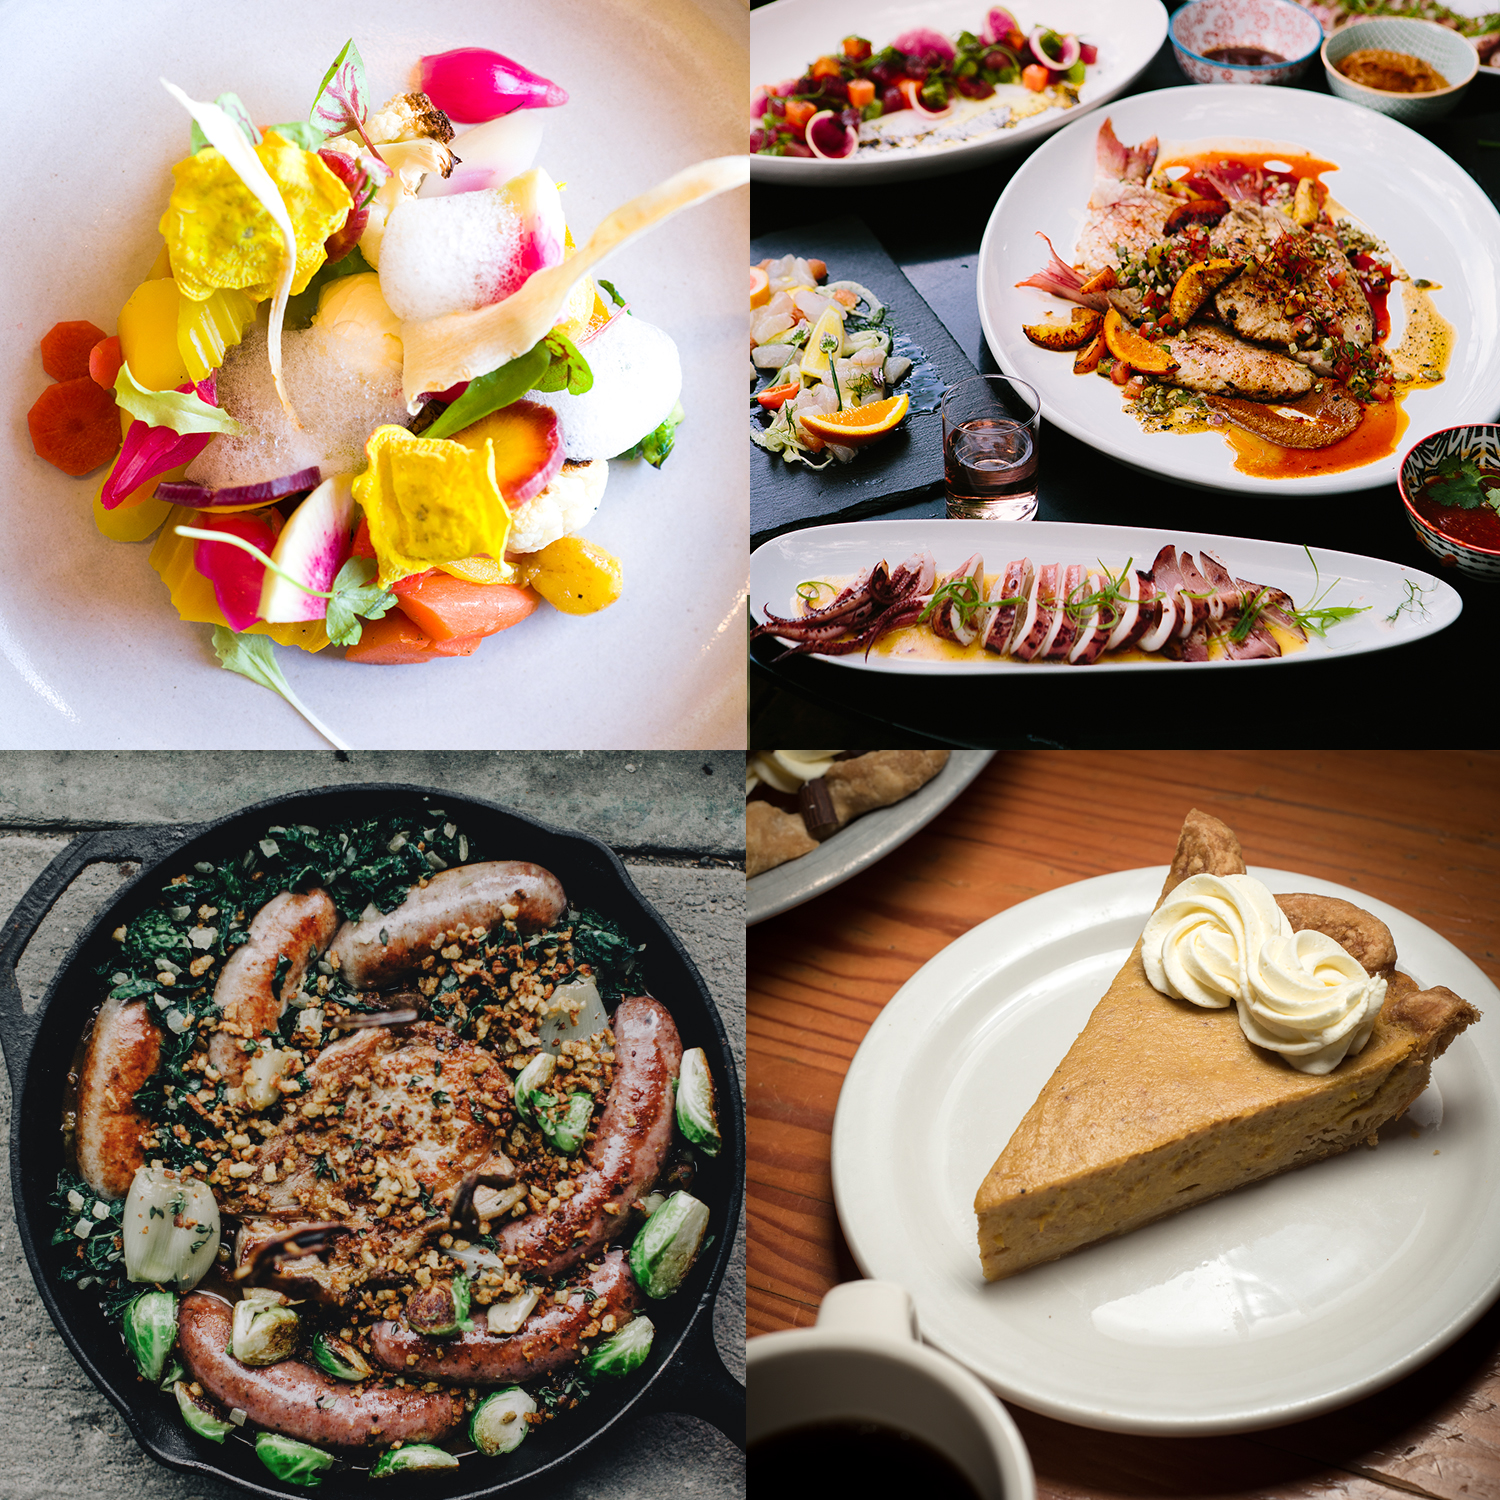 Clockwise from top left: Vegetables at Heirloom // Photo by Dan Murphy; Seafood feast made by Billy Tserenbat and Zach Schugel // Photo by Wing Ta; Pumpkin pie at Birchwood Cafe // Photo by Kevin Kramer; Gavin Kaysen's cassoulet // Photo by Matt Lien